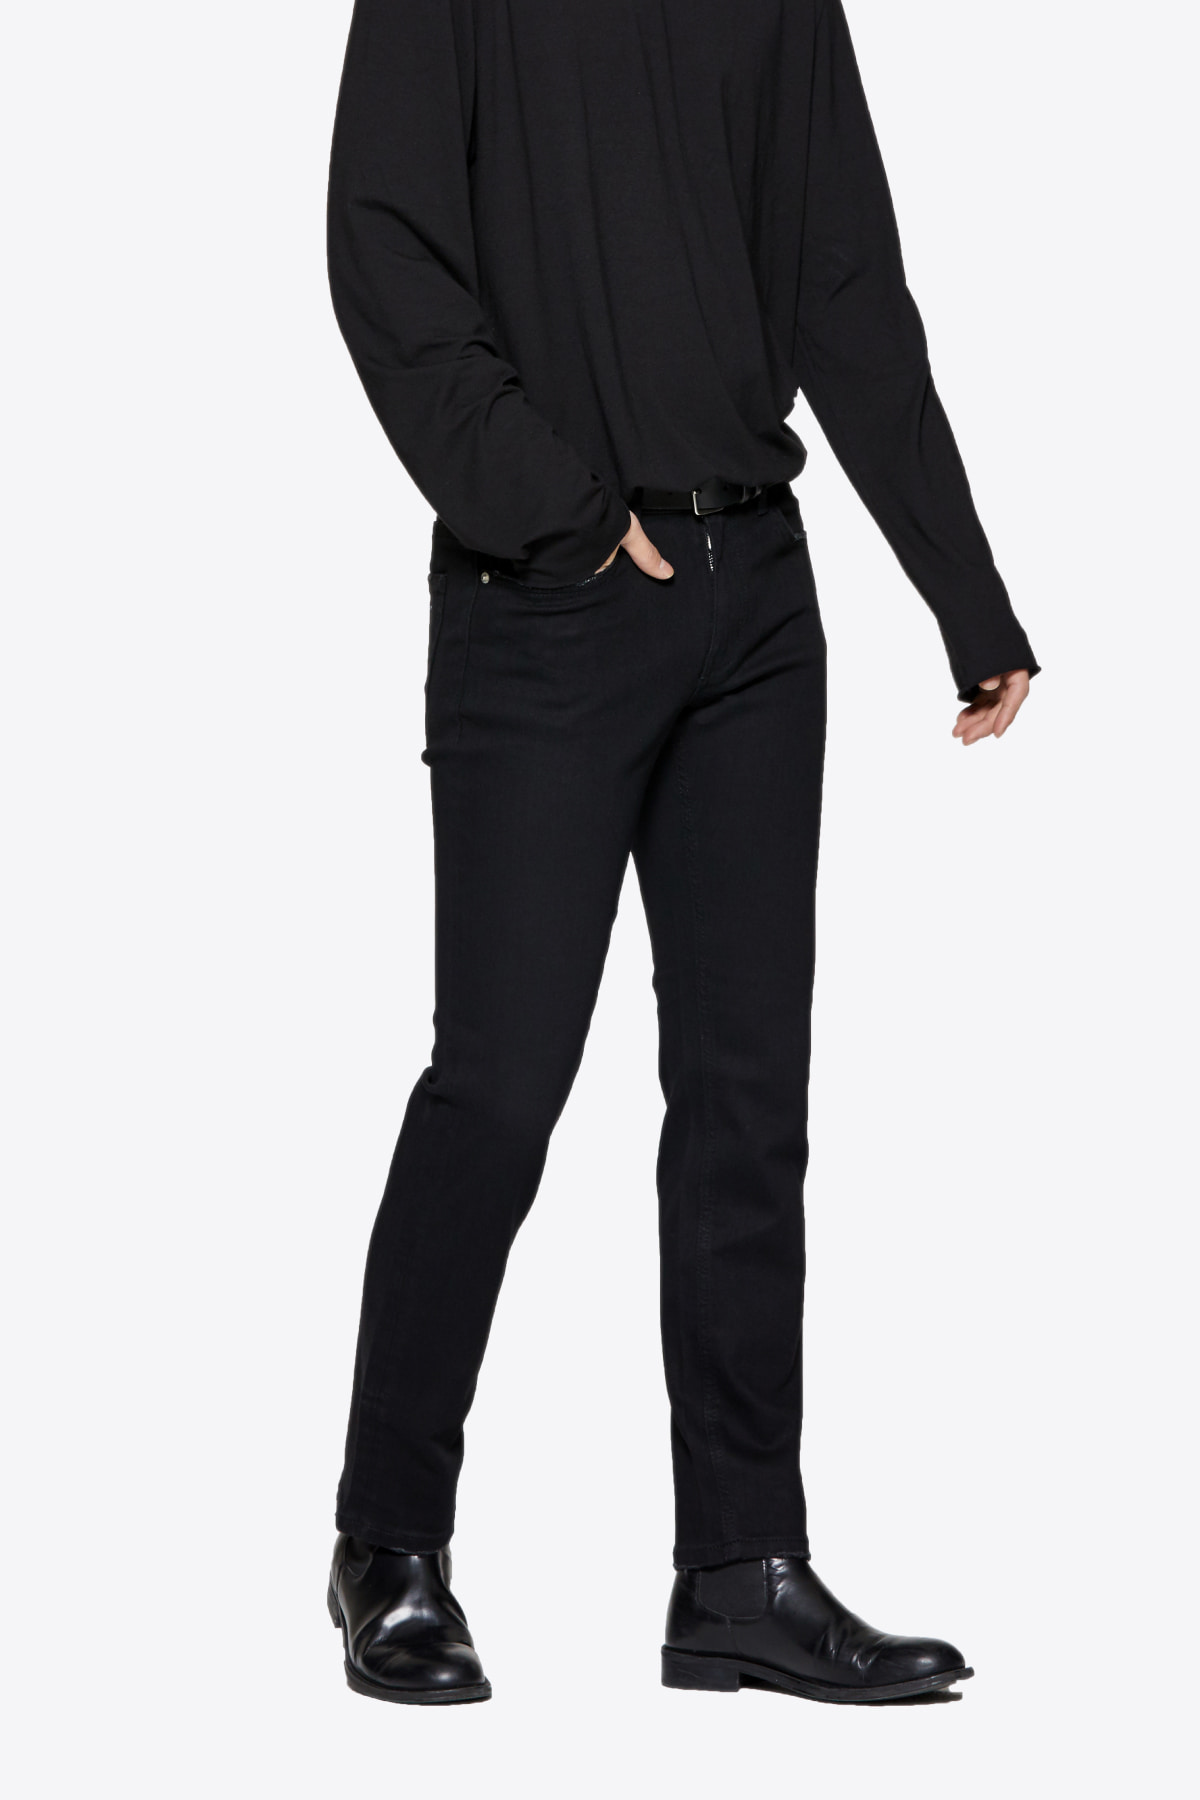 [3/19 예약발송] #0082 black normal crop jeans